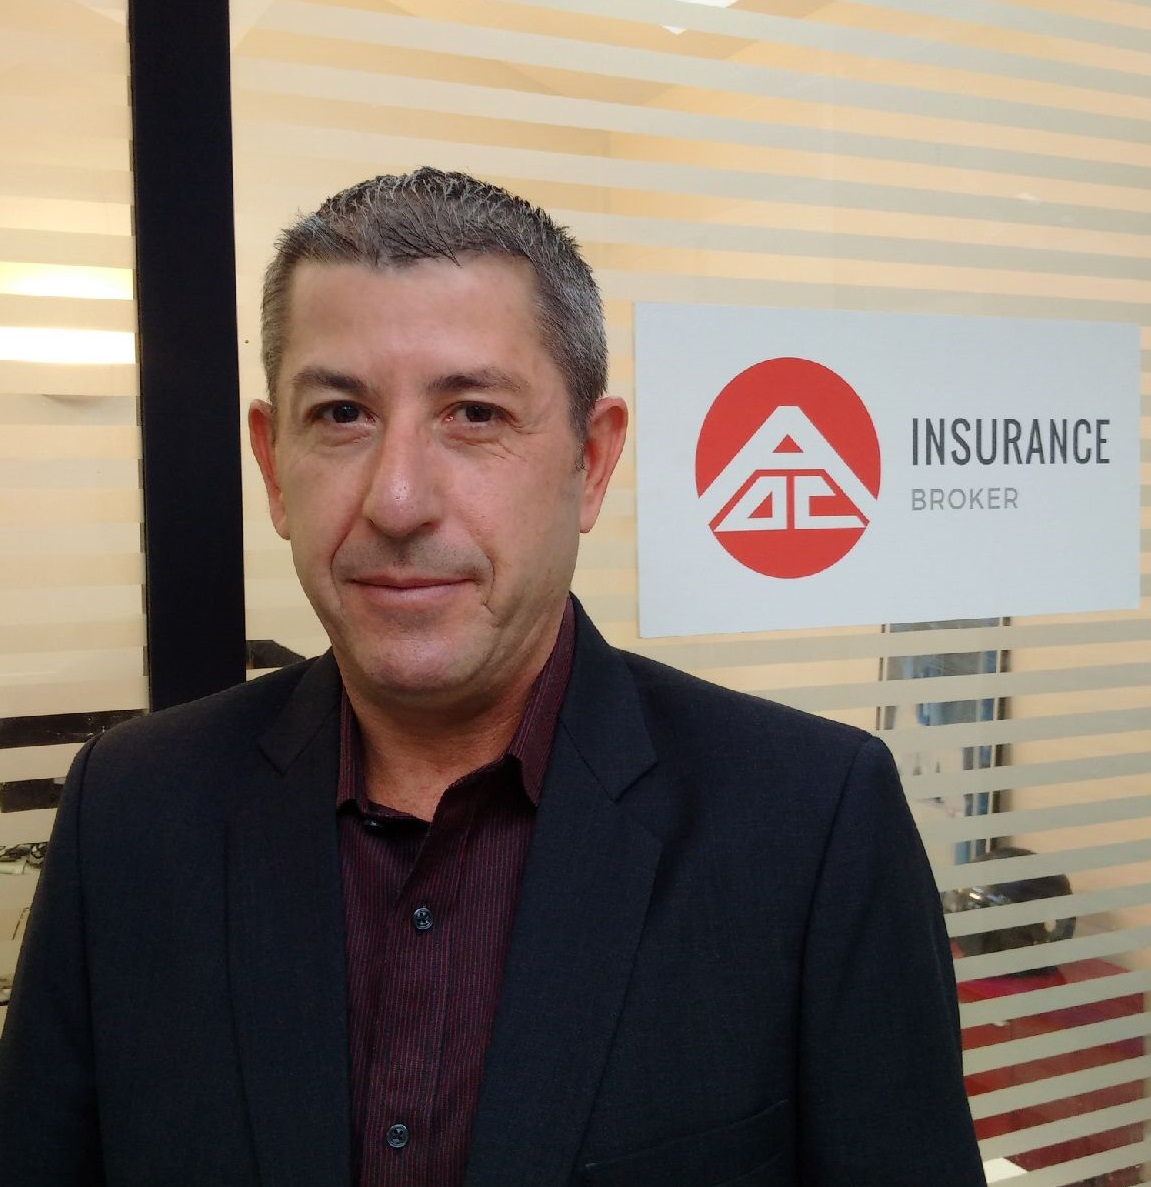 AOC's CEO Olivier Le Faouder Shares his Experience with French Expats, the Asian Insurance Market, and their UGB Partnership